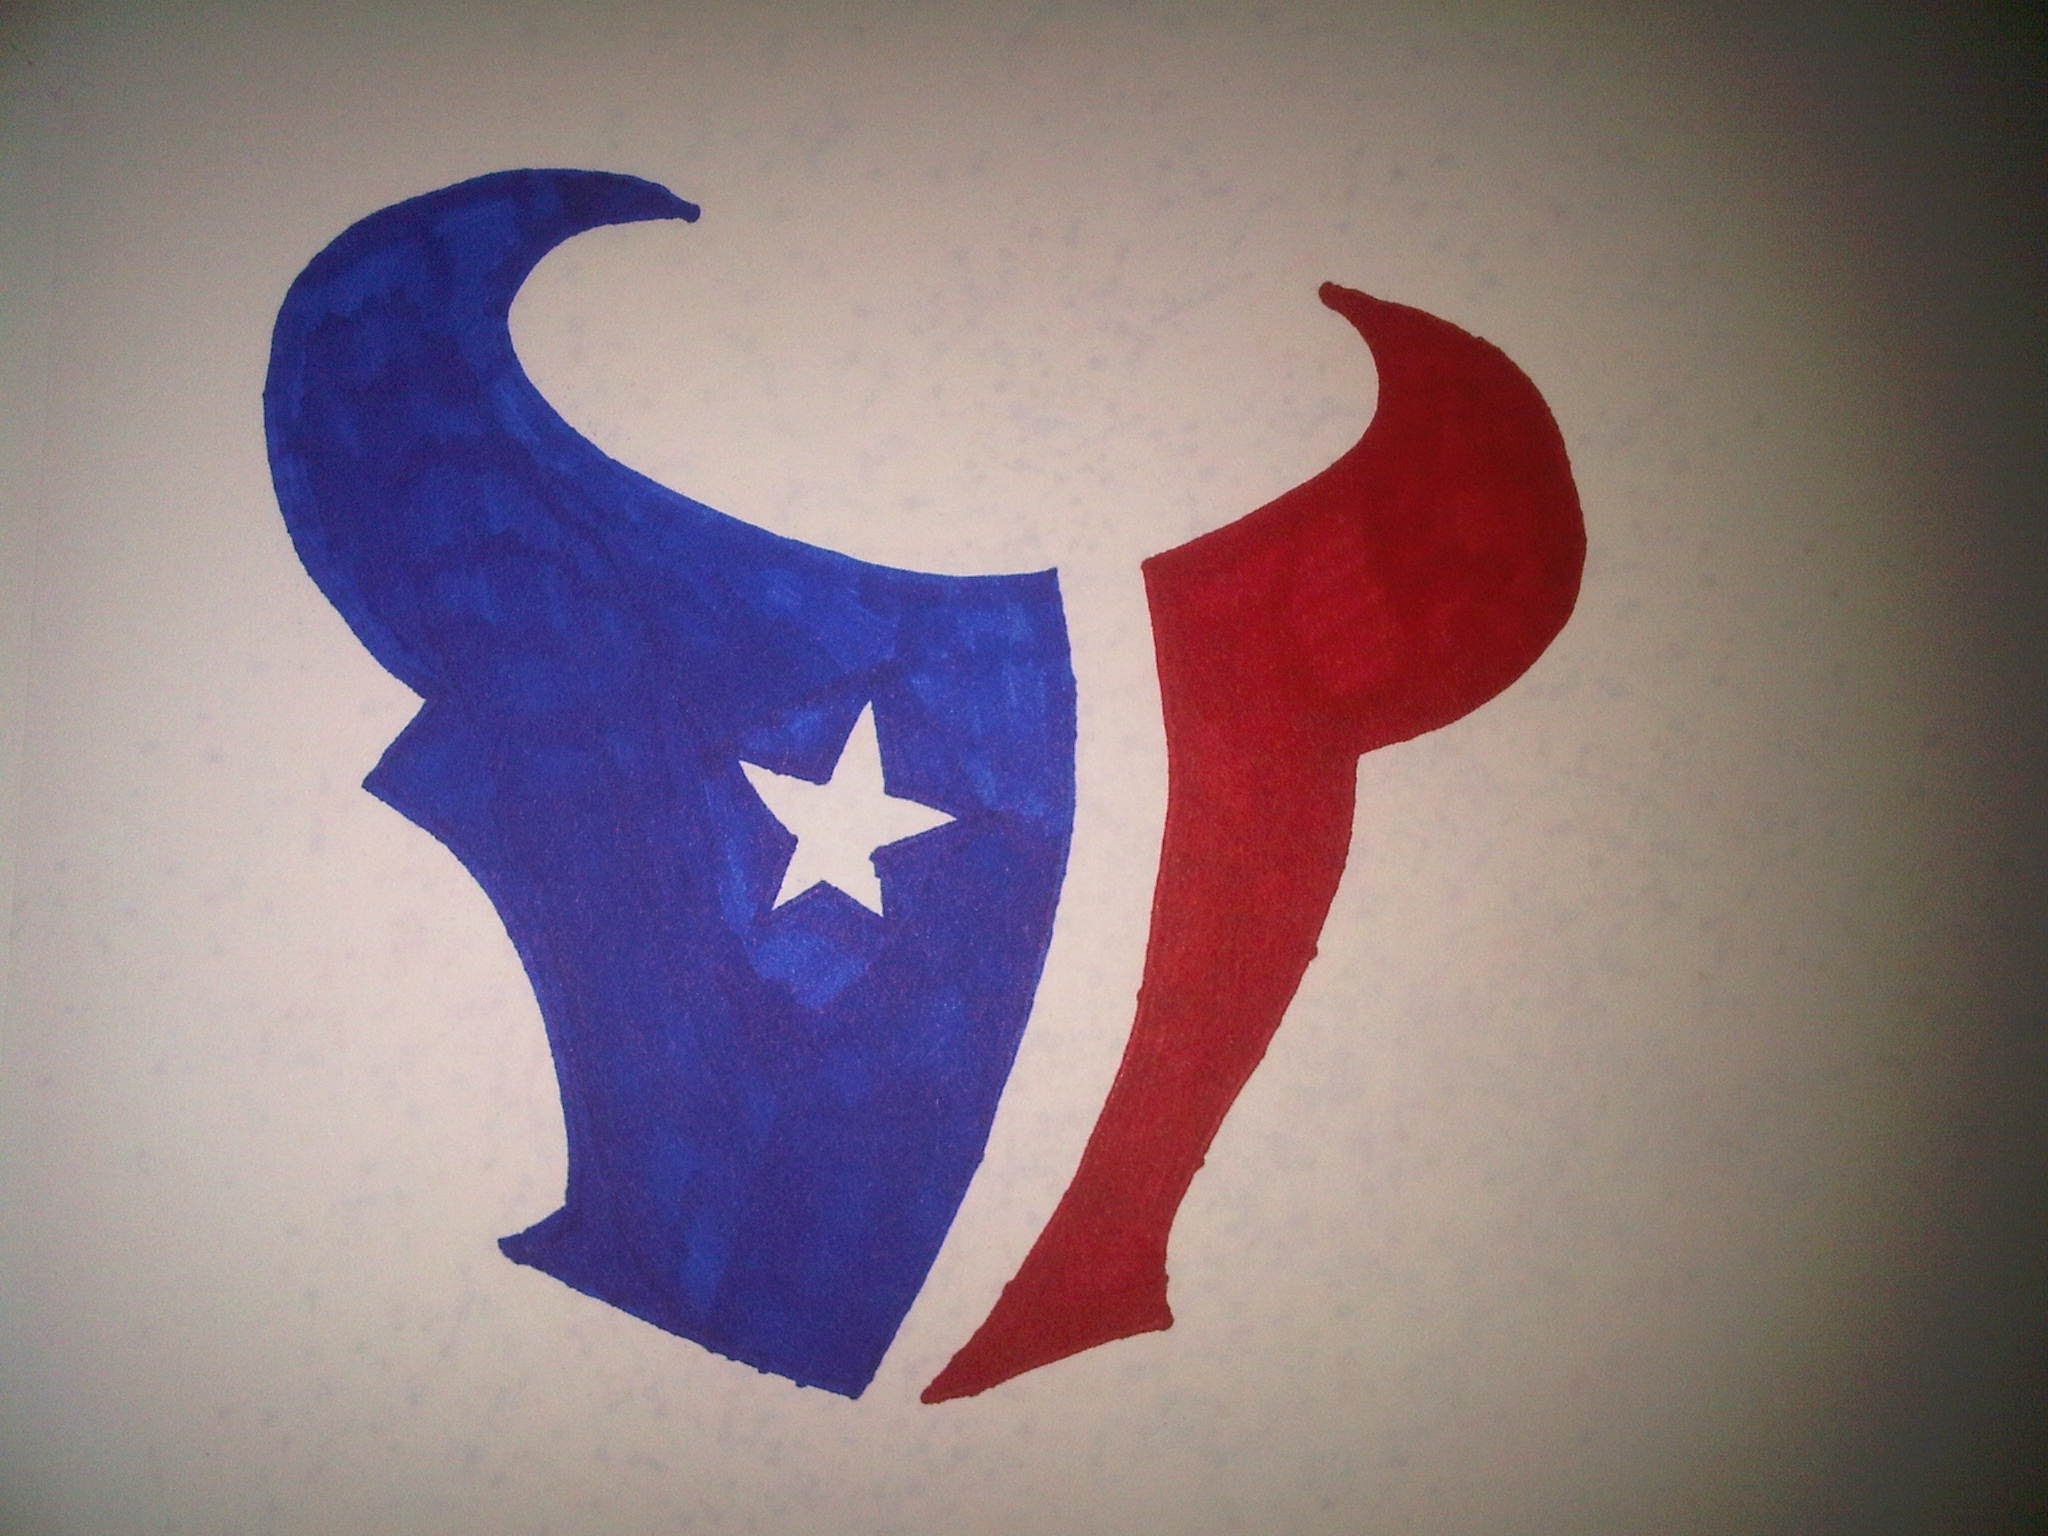 2048x1536 How To Draw The Houston Texans Logo